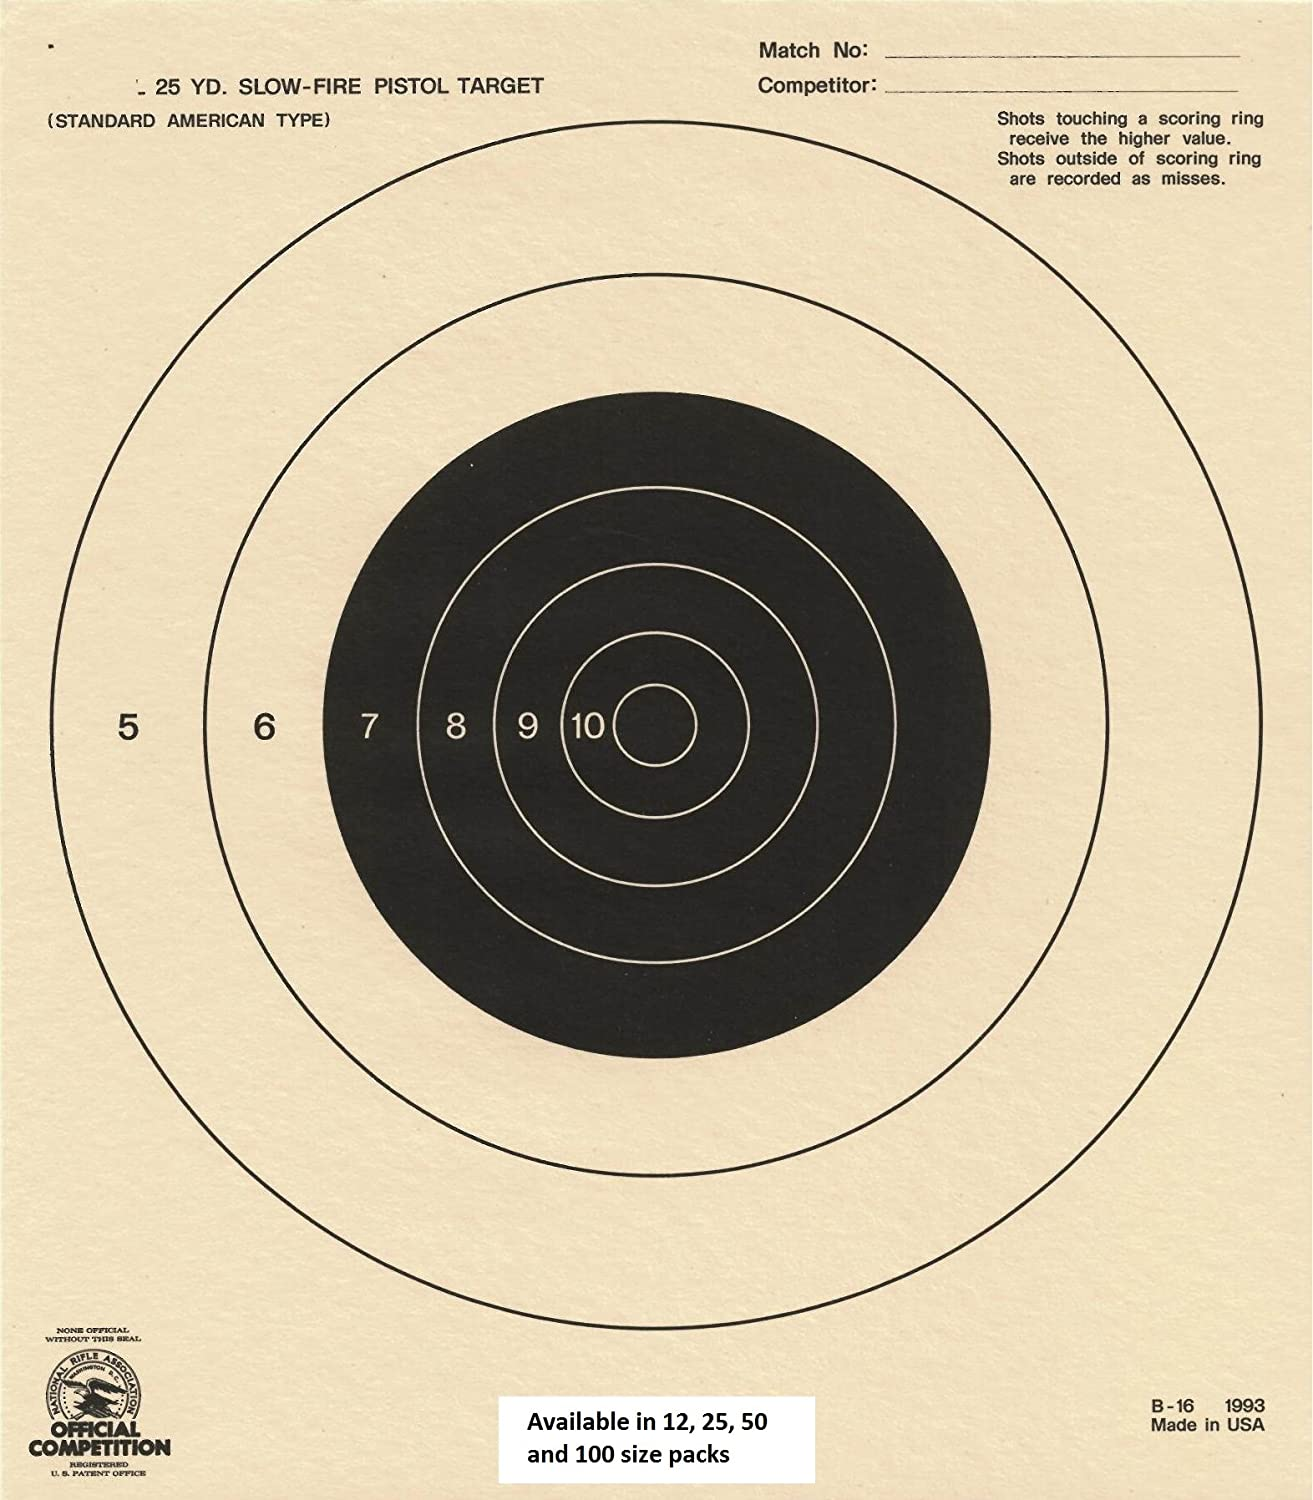 amazon com domagron 25 yard slow fire pistol target official nra